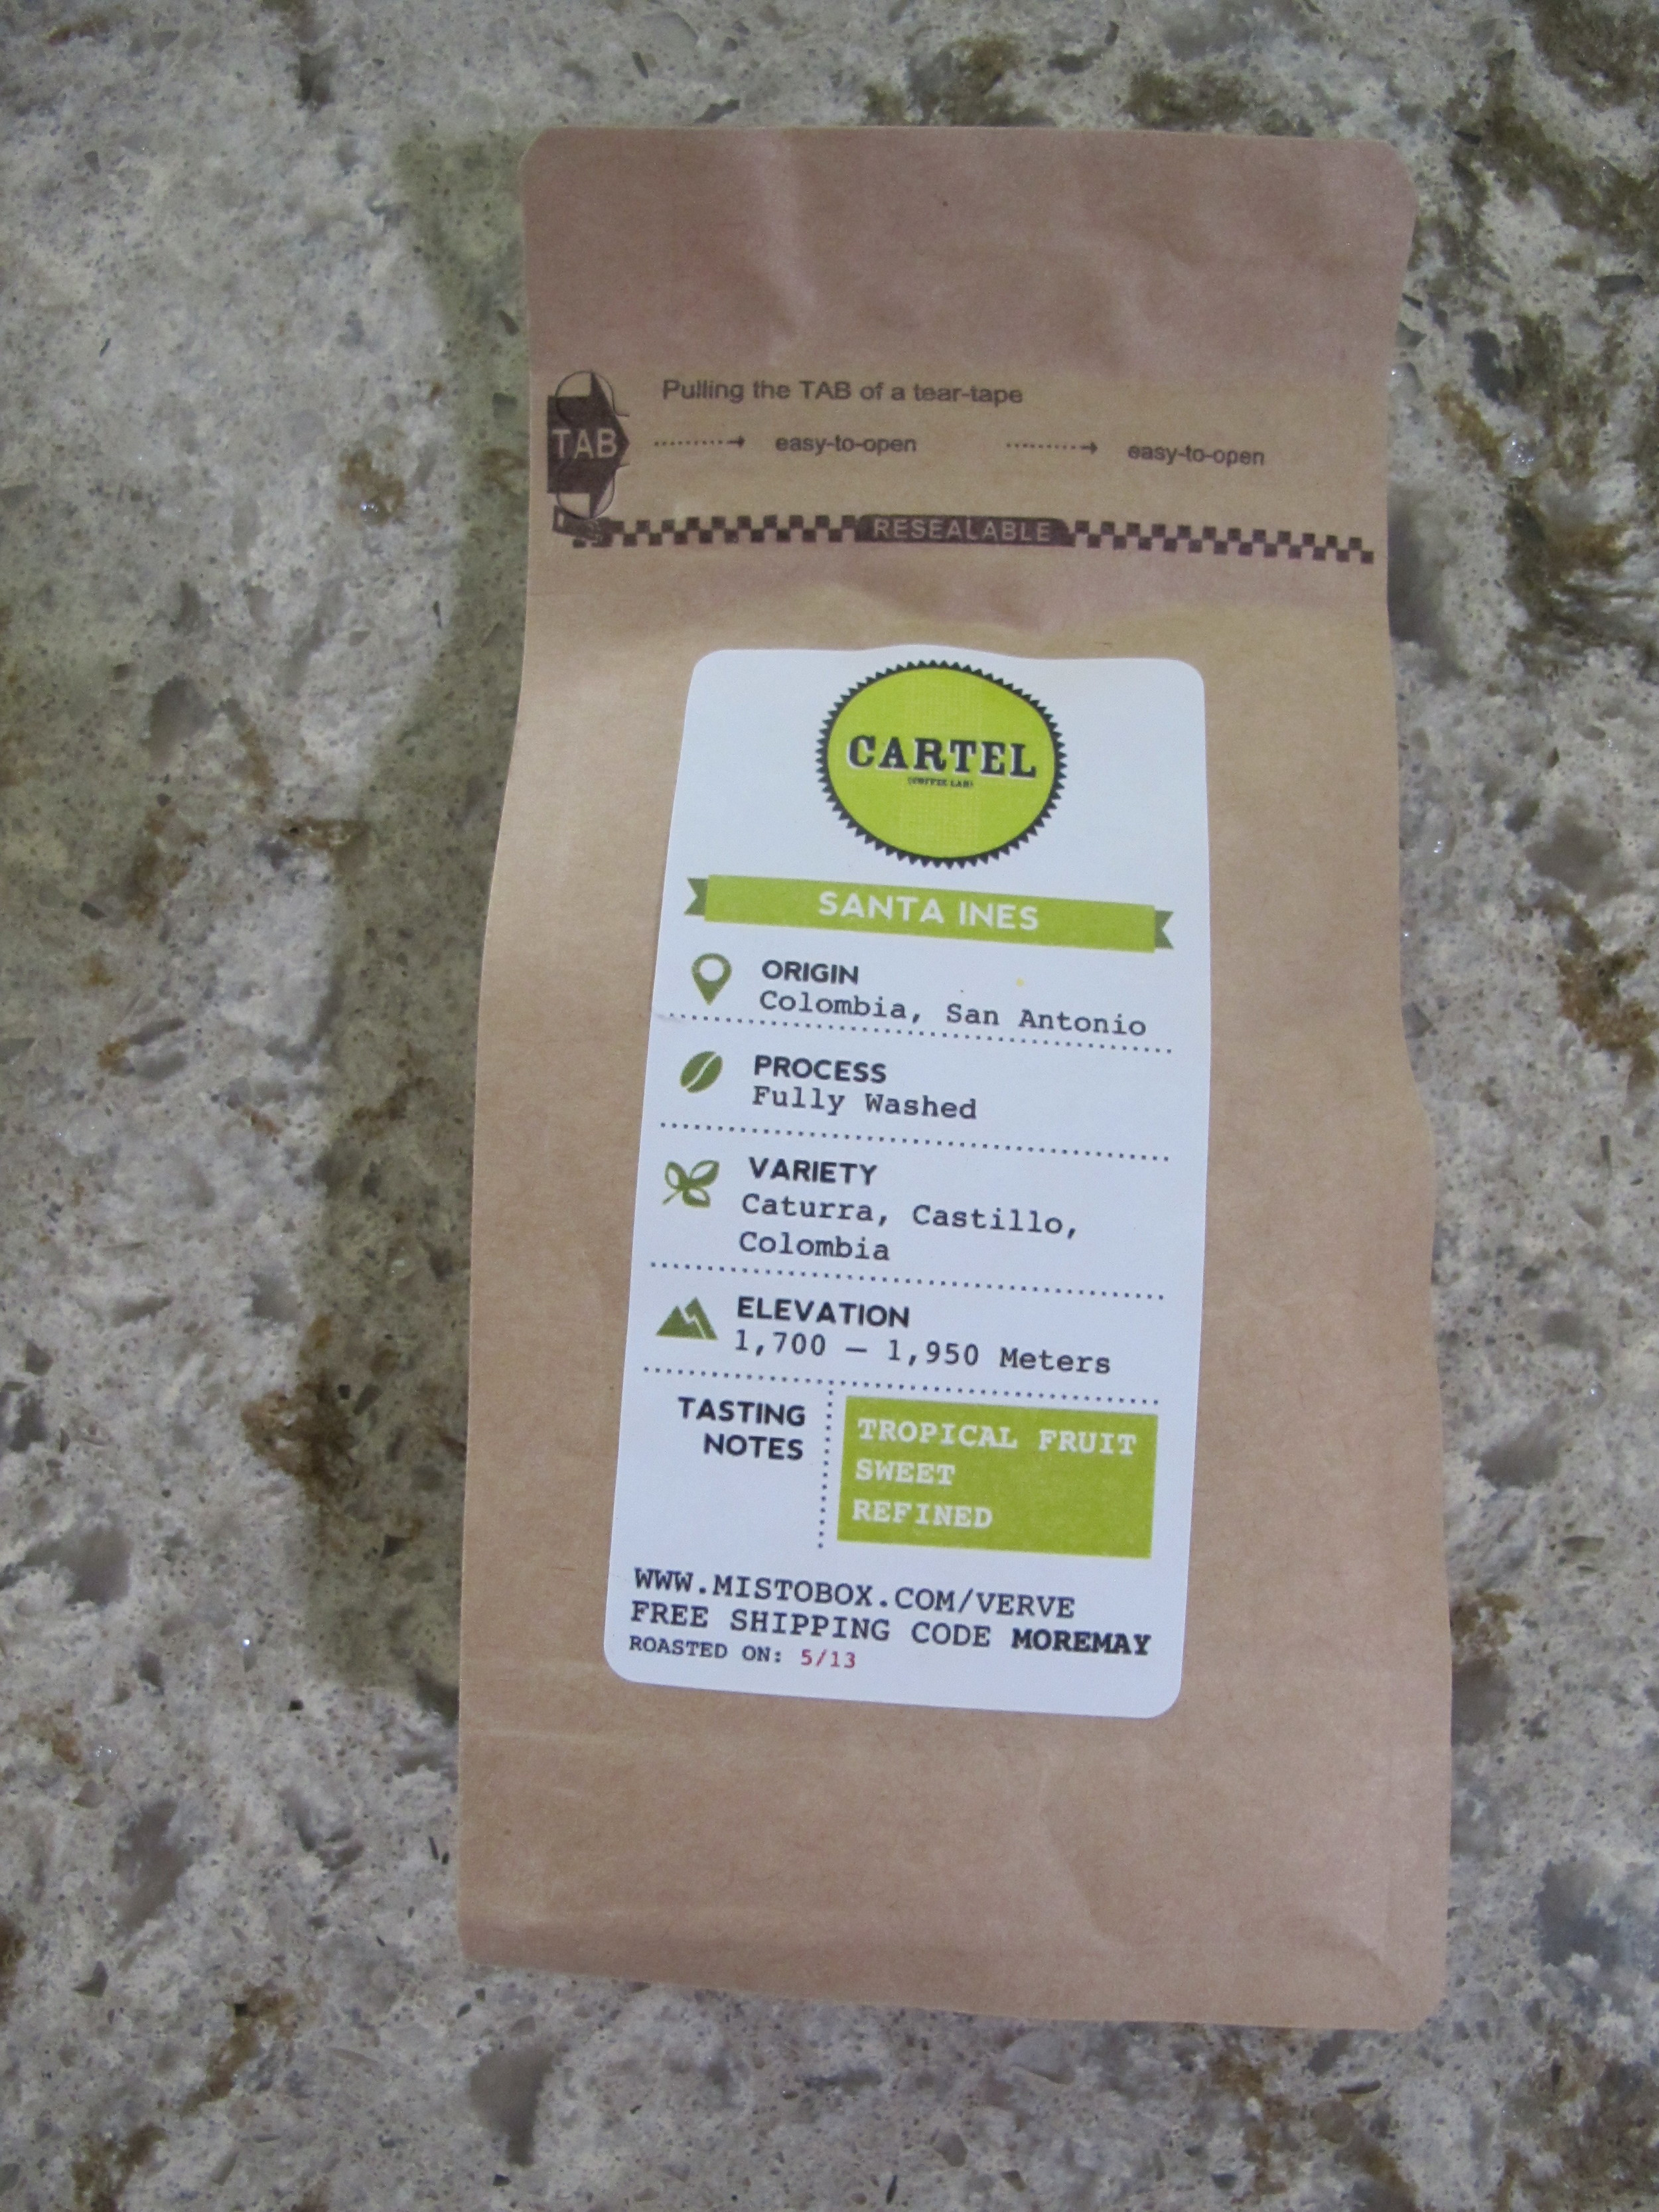 One of the coffees in the may Misto Box